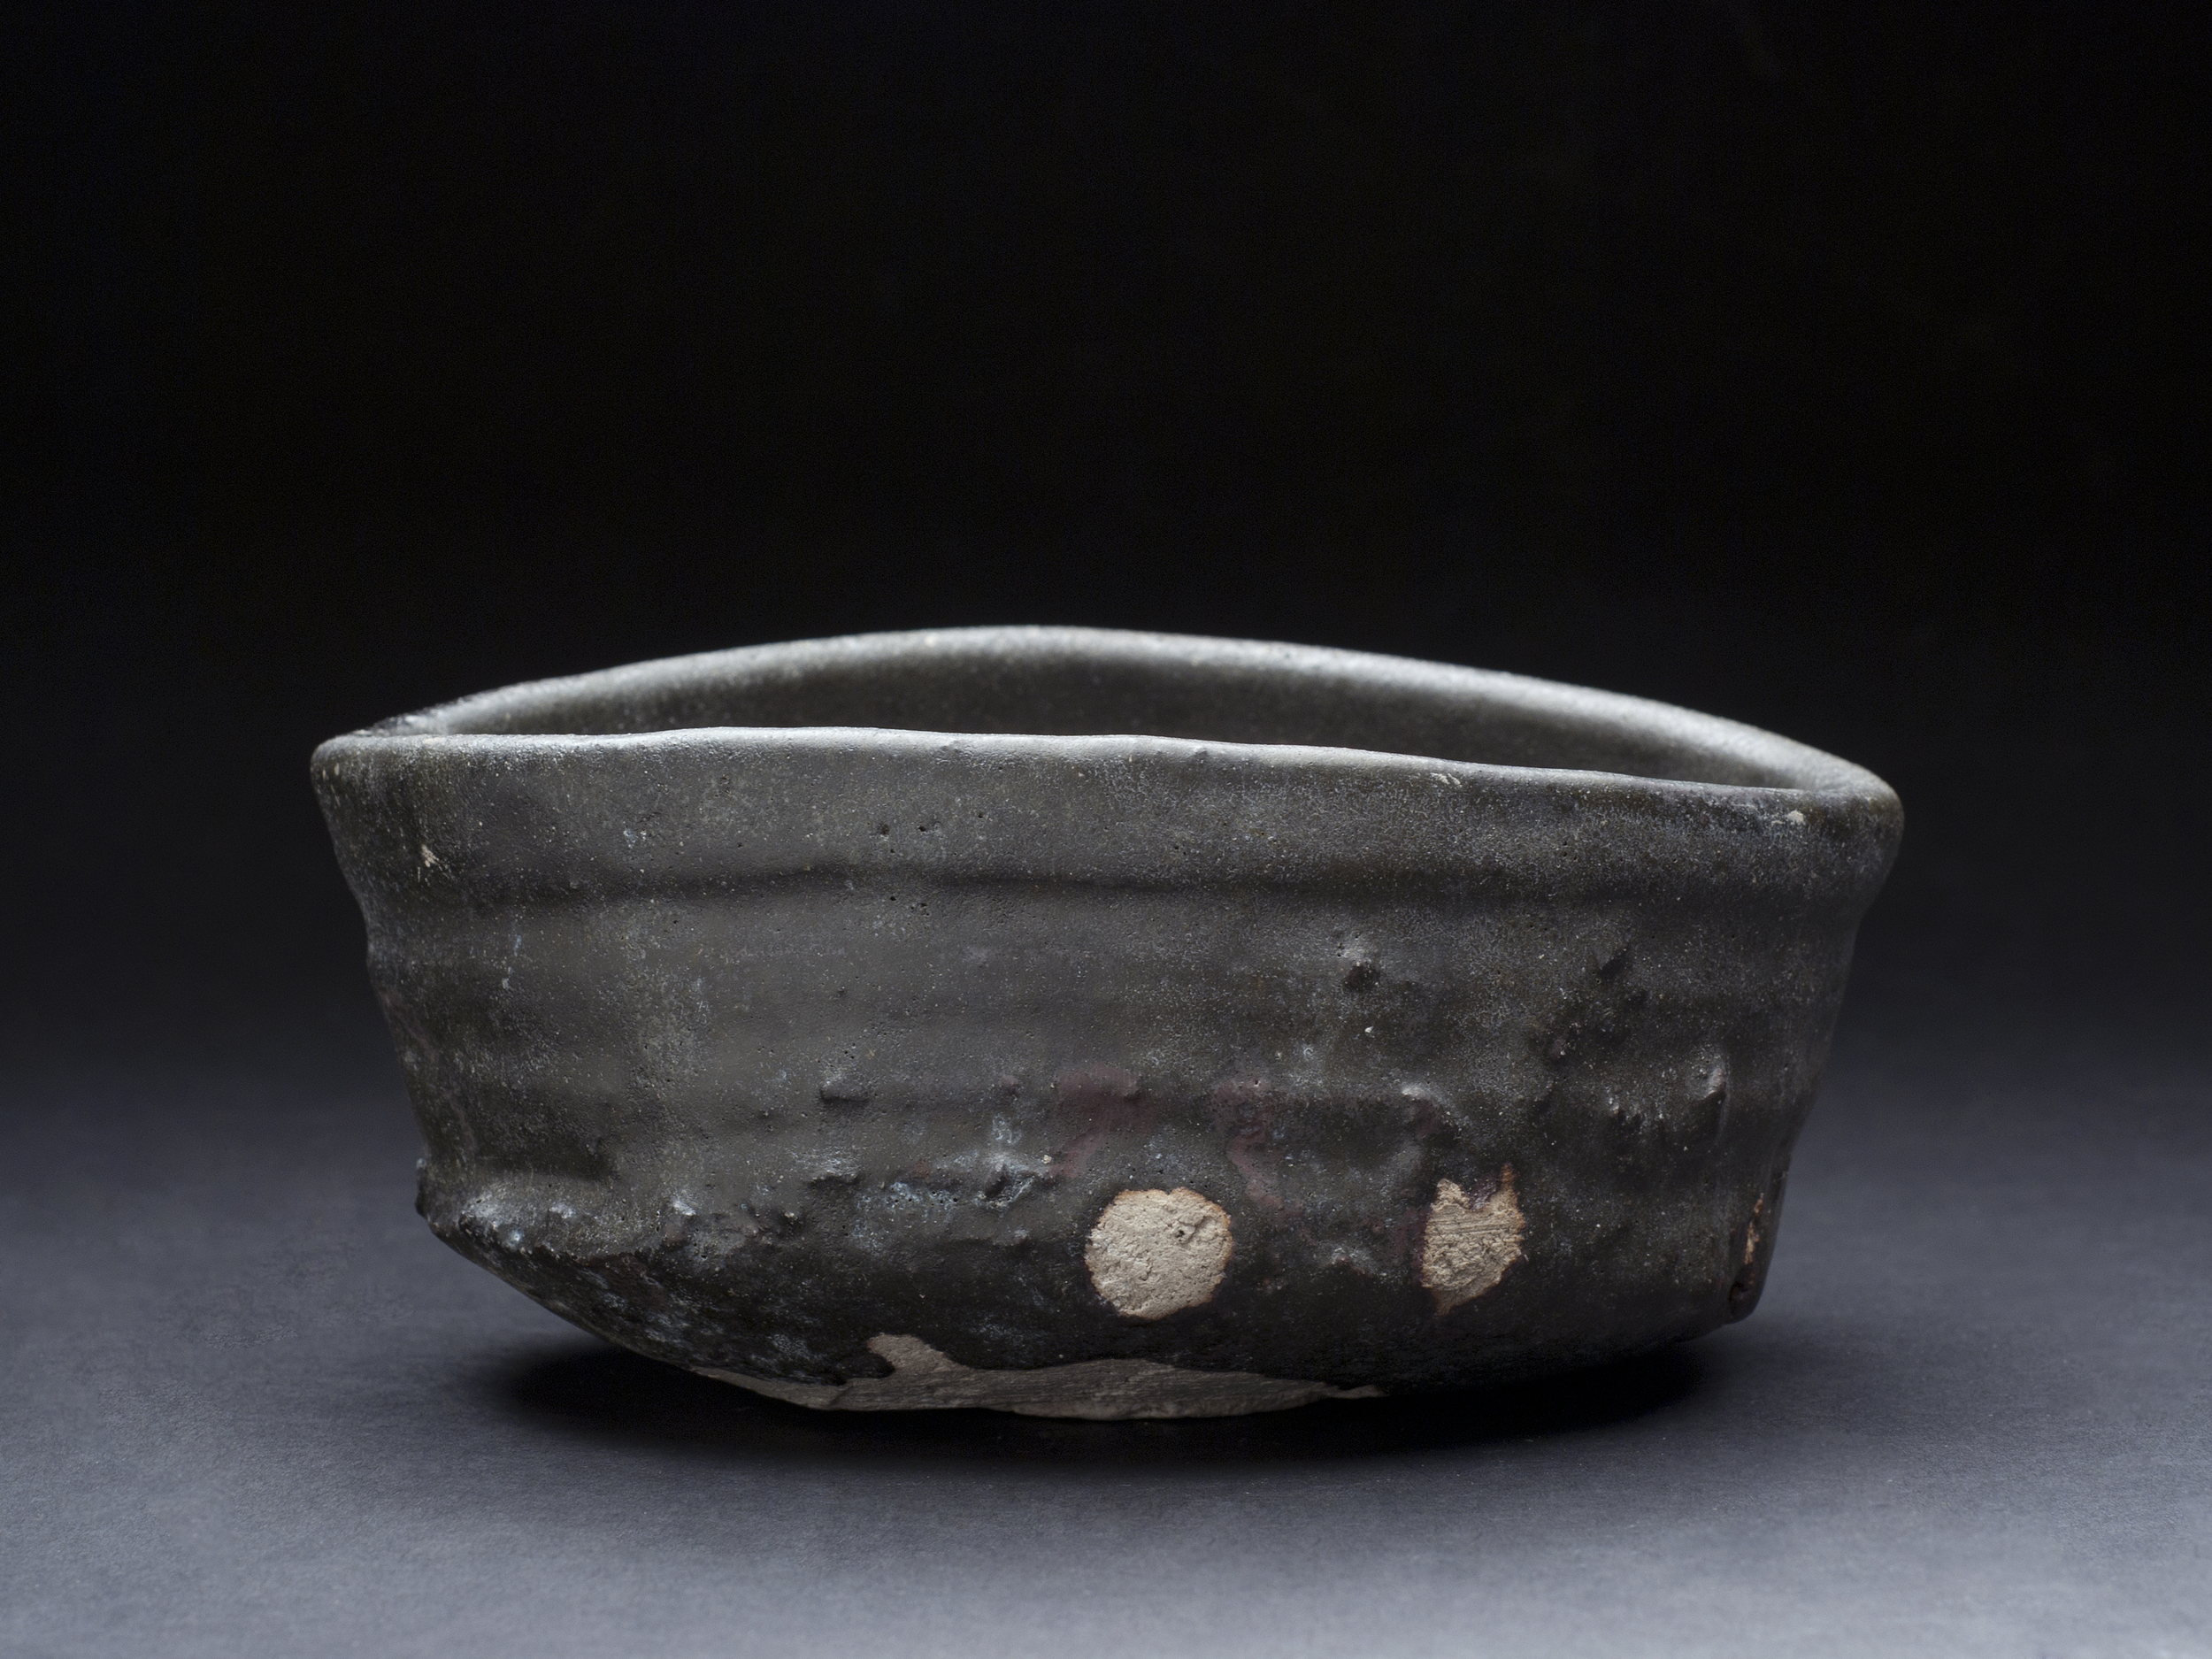 Shiro Tsujimura    Kuro-Oribe Chawan  , 2007 Mixed iron, charcoal (mokutan), Chooseki, etc, and firing with 1300C. And then proceed by rapid cooling, make it become black color 3 x 6.5 inches 7.6 x 16.5 cm STs 2